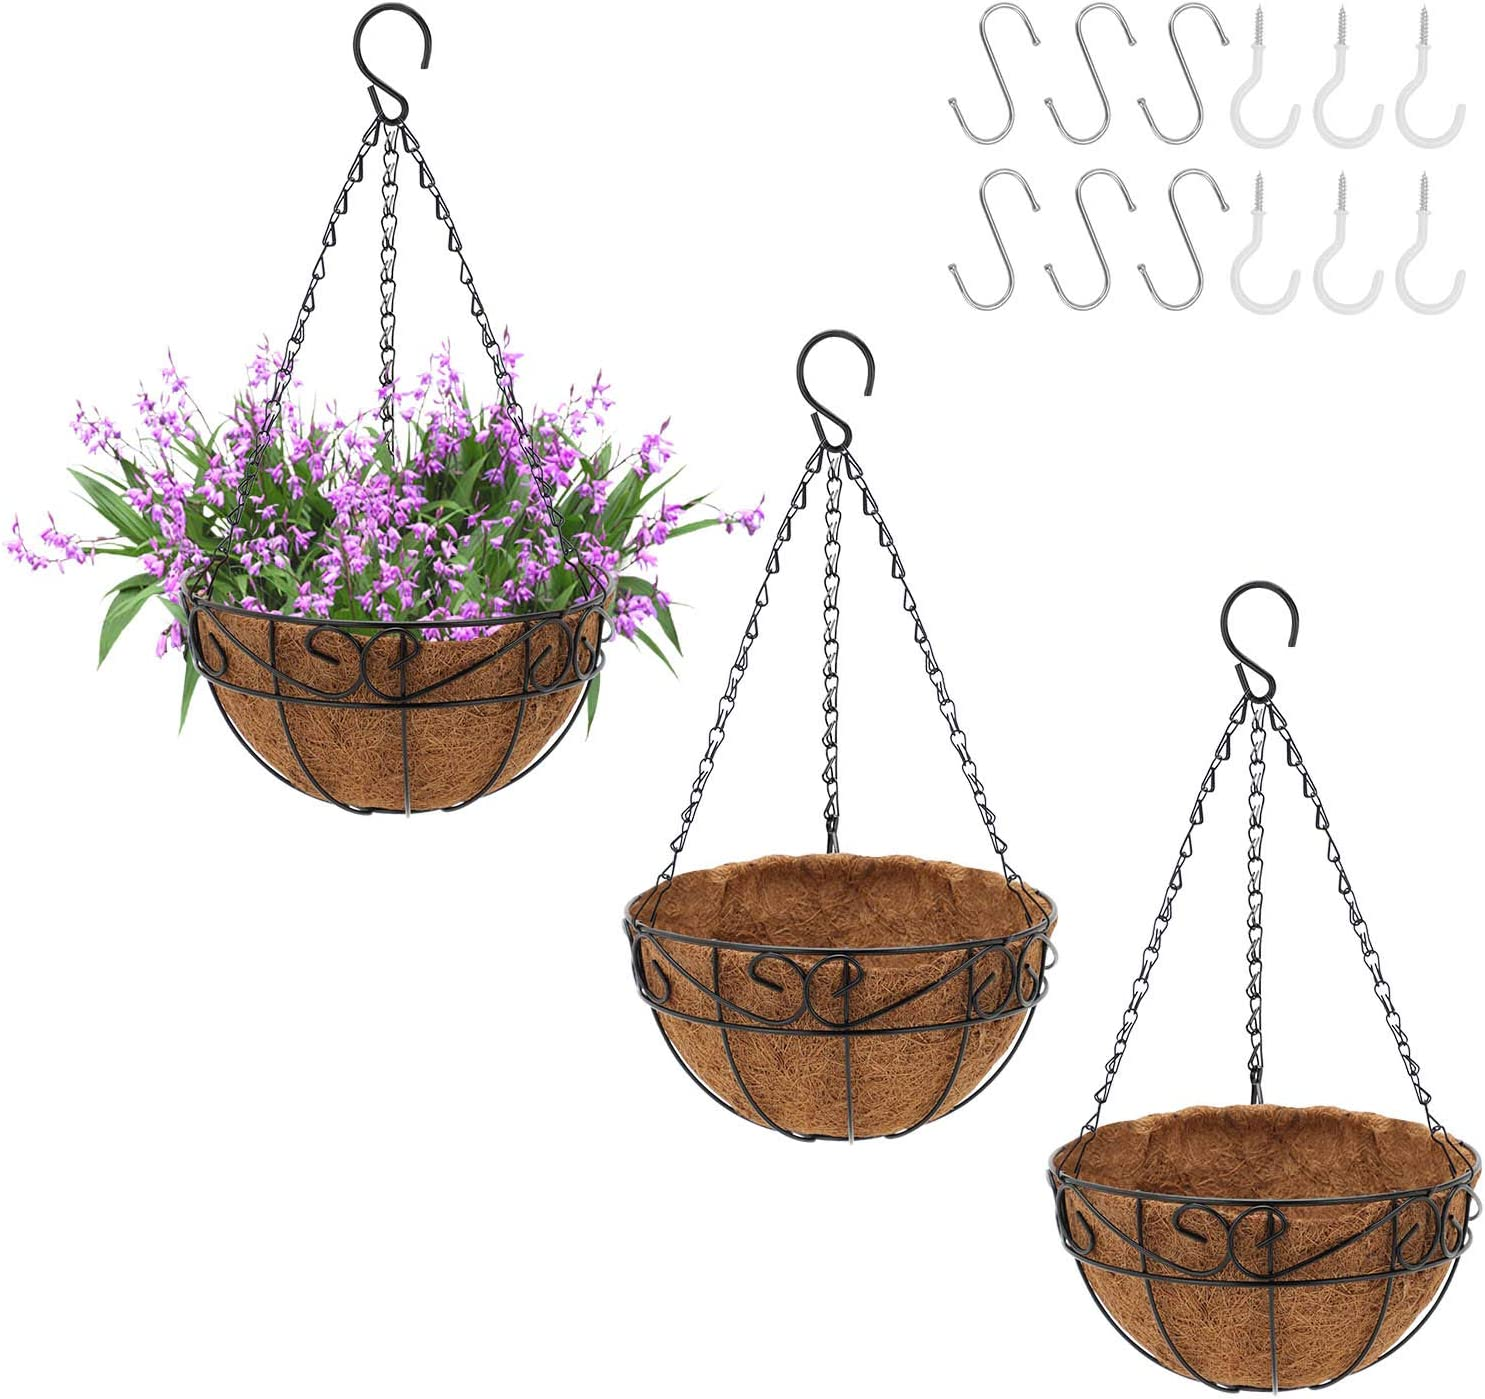 GROWNEER 6 Packs 10 Inches Metal Hanging Planter Basket with Coco Coir Liner, Round Wire Plant Holder with Chain and 12 Pcs Hooks, Hanging Baskets for Garden Patio Porch Balcony Décor